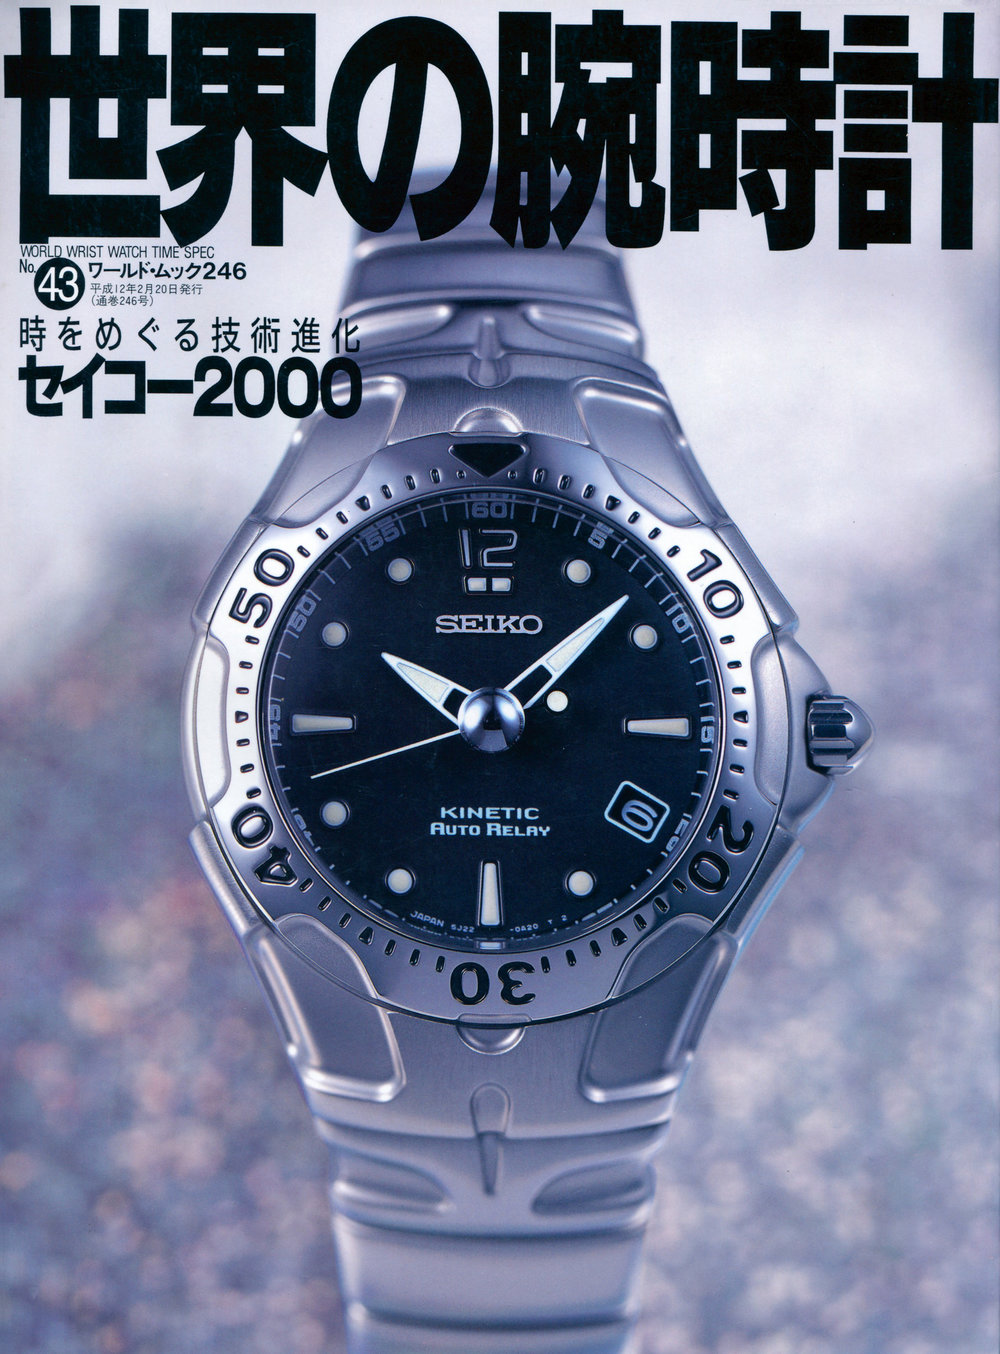 Cover - World Wrist Watch Time Spec No. 43